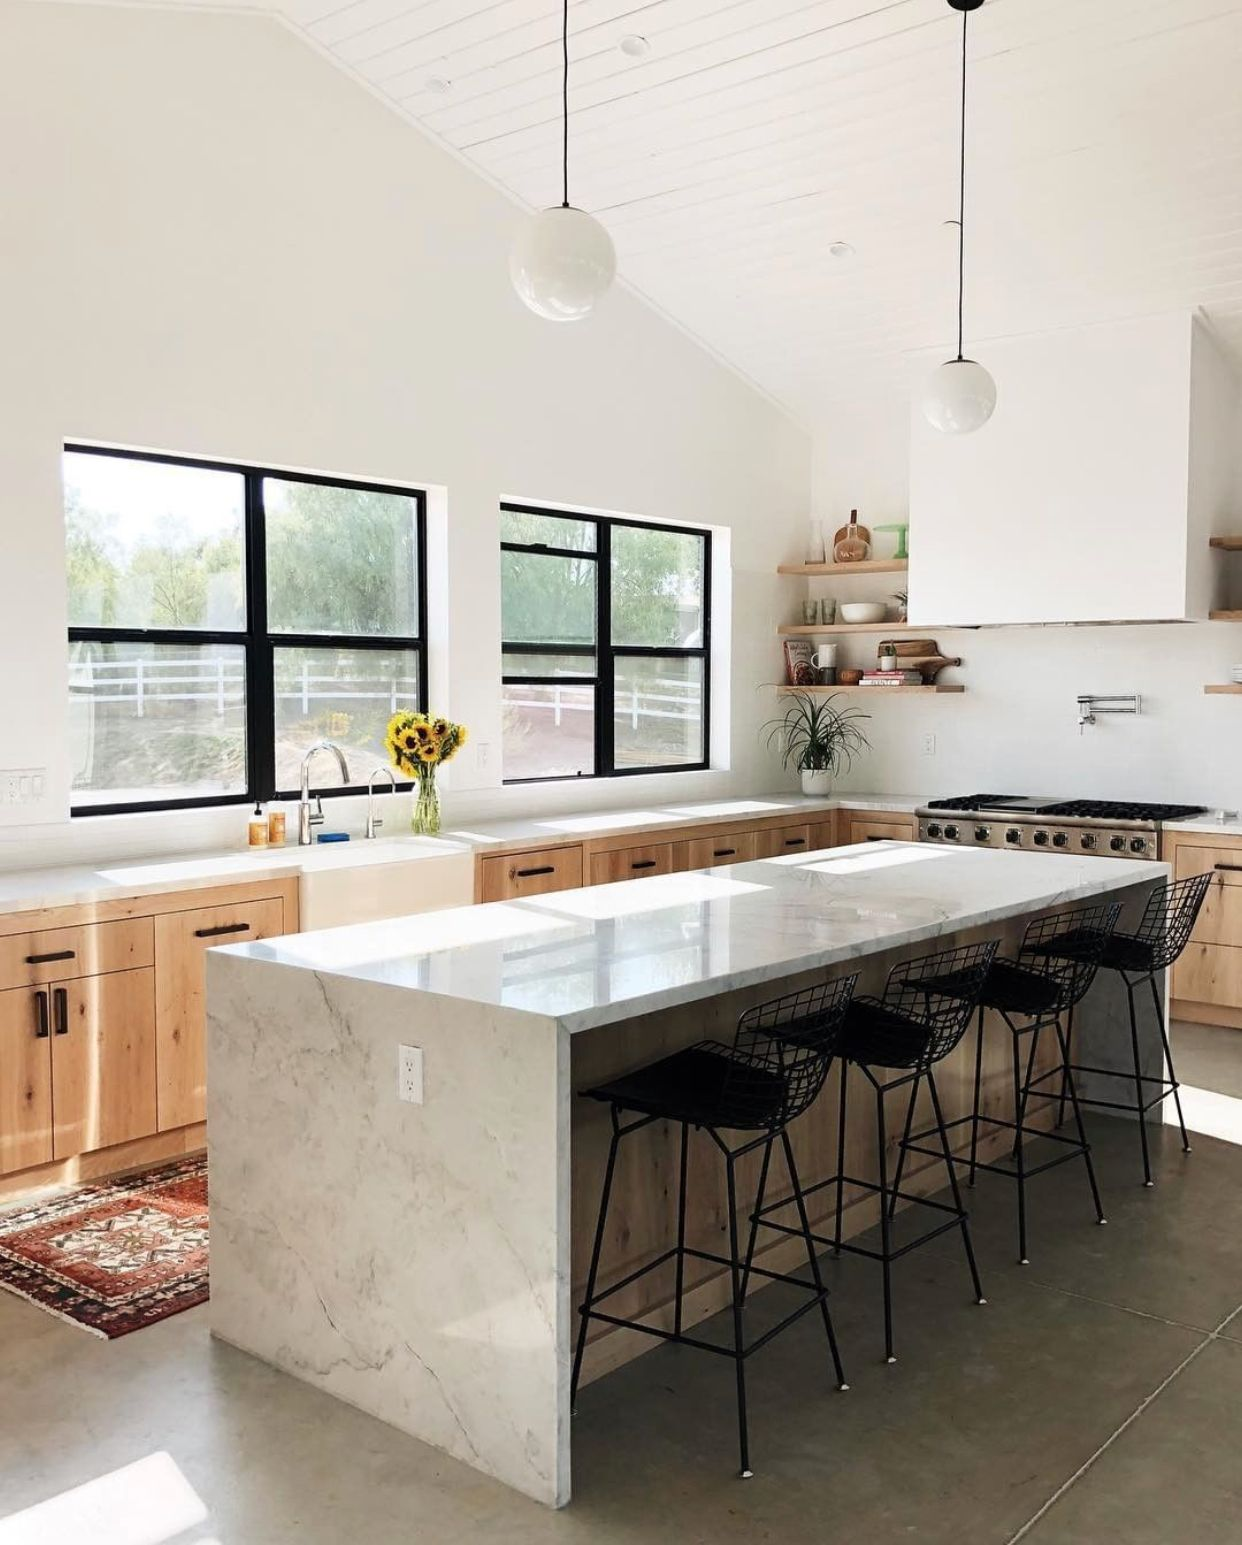 Pin By RETHABILE Selahle On Kitchens In 2019